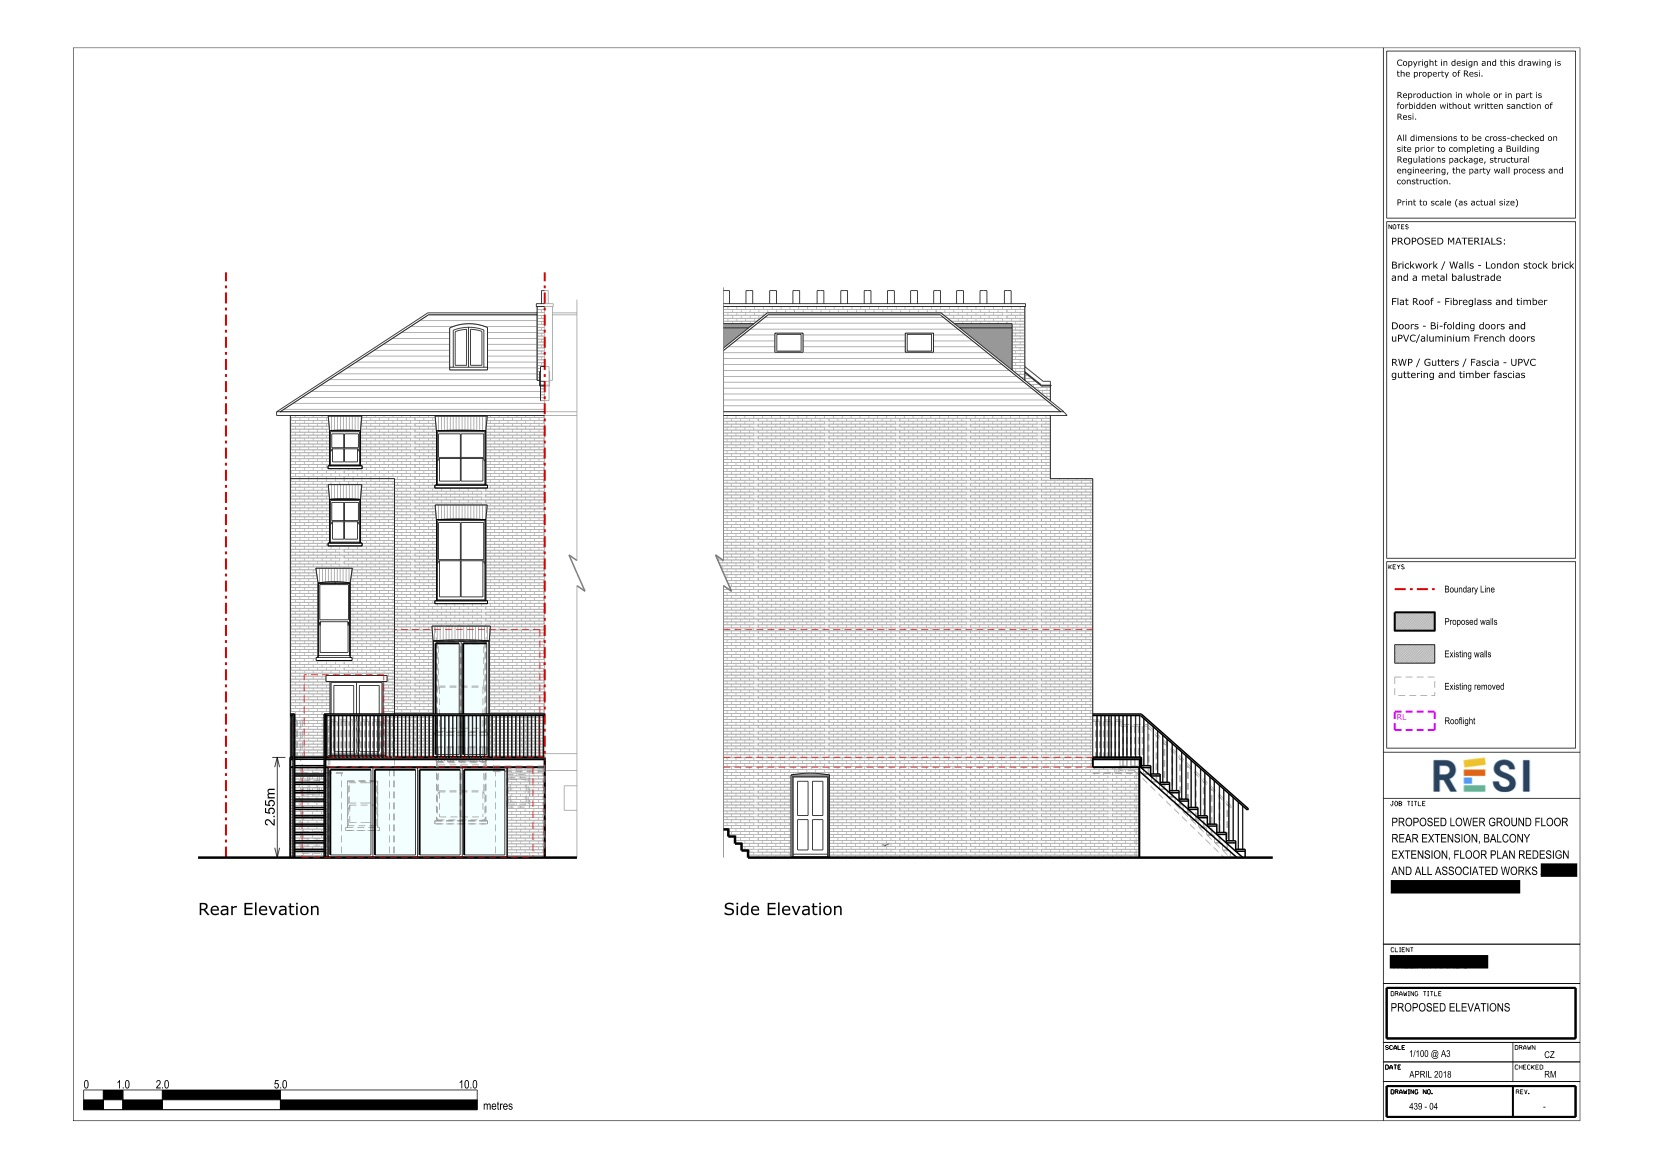 Architectural drawings 31   elevations